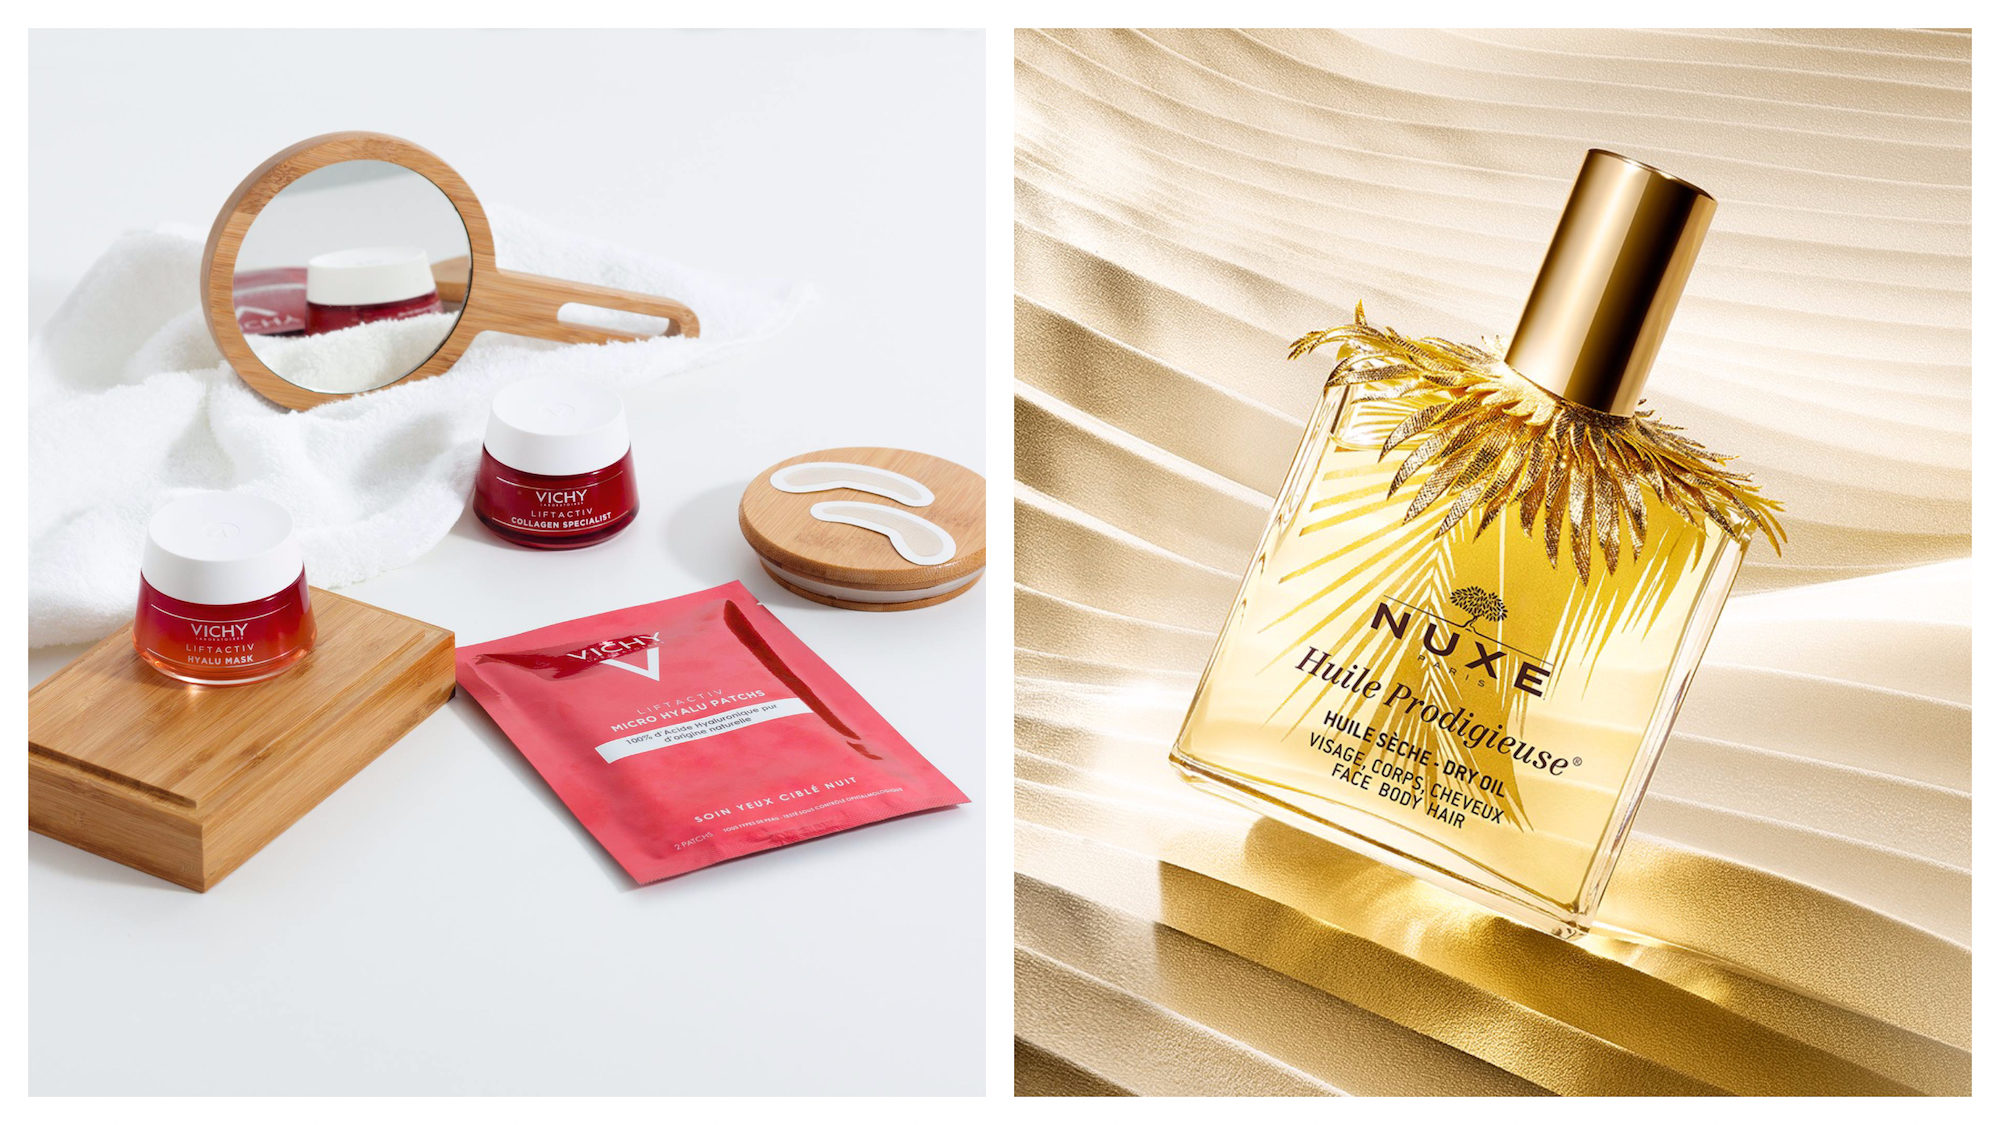 The French pharmacy is the best place to shop for French beauty products for less in Paris, like Vichy skincare (left) and luxurious, delicious-smelling Nuxe dry oil for your hair and skin (right).